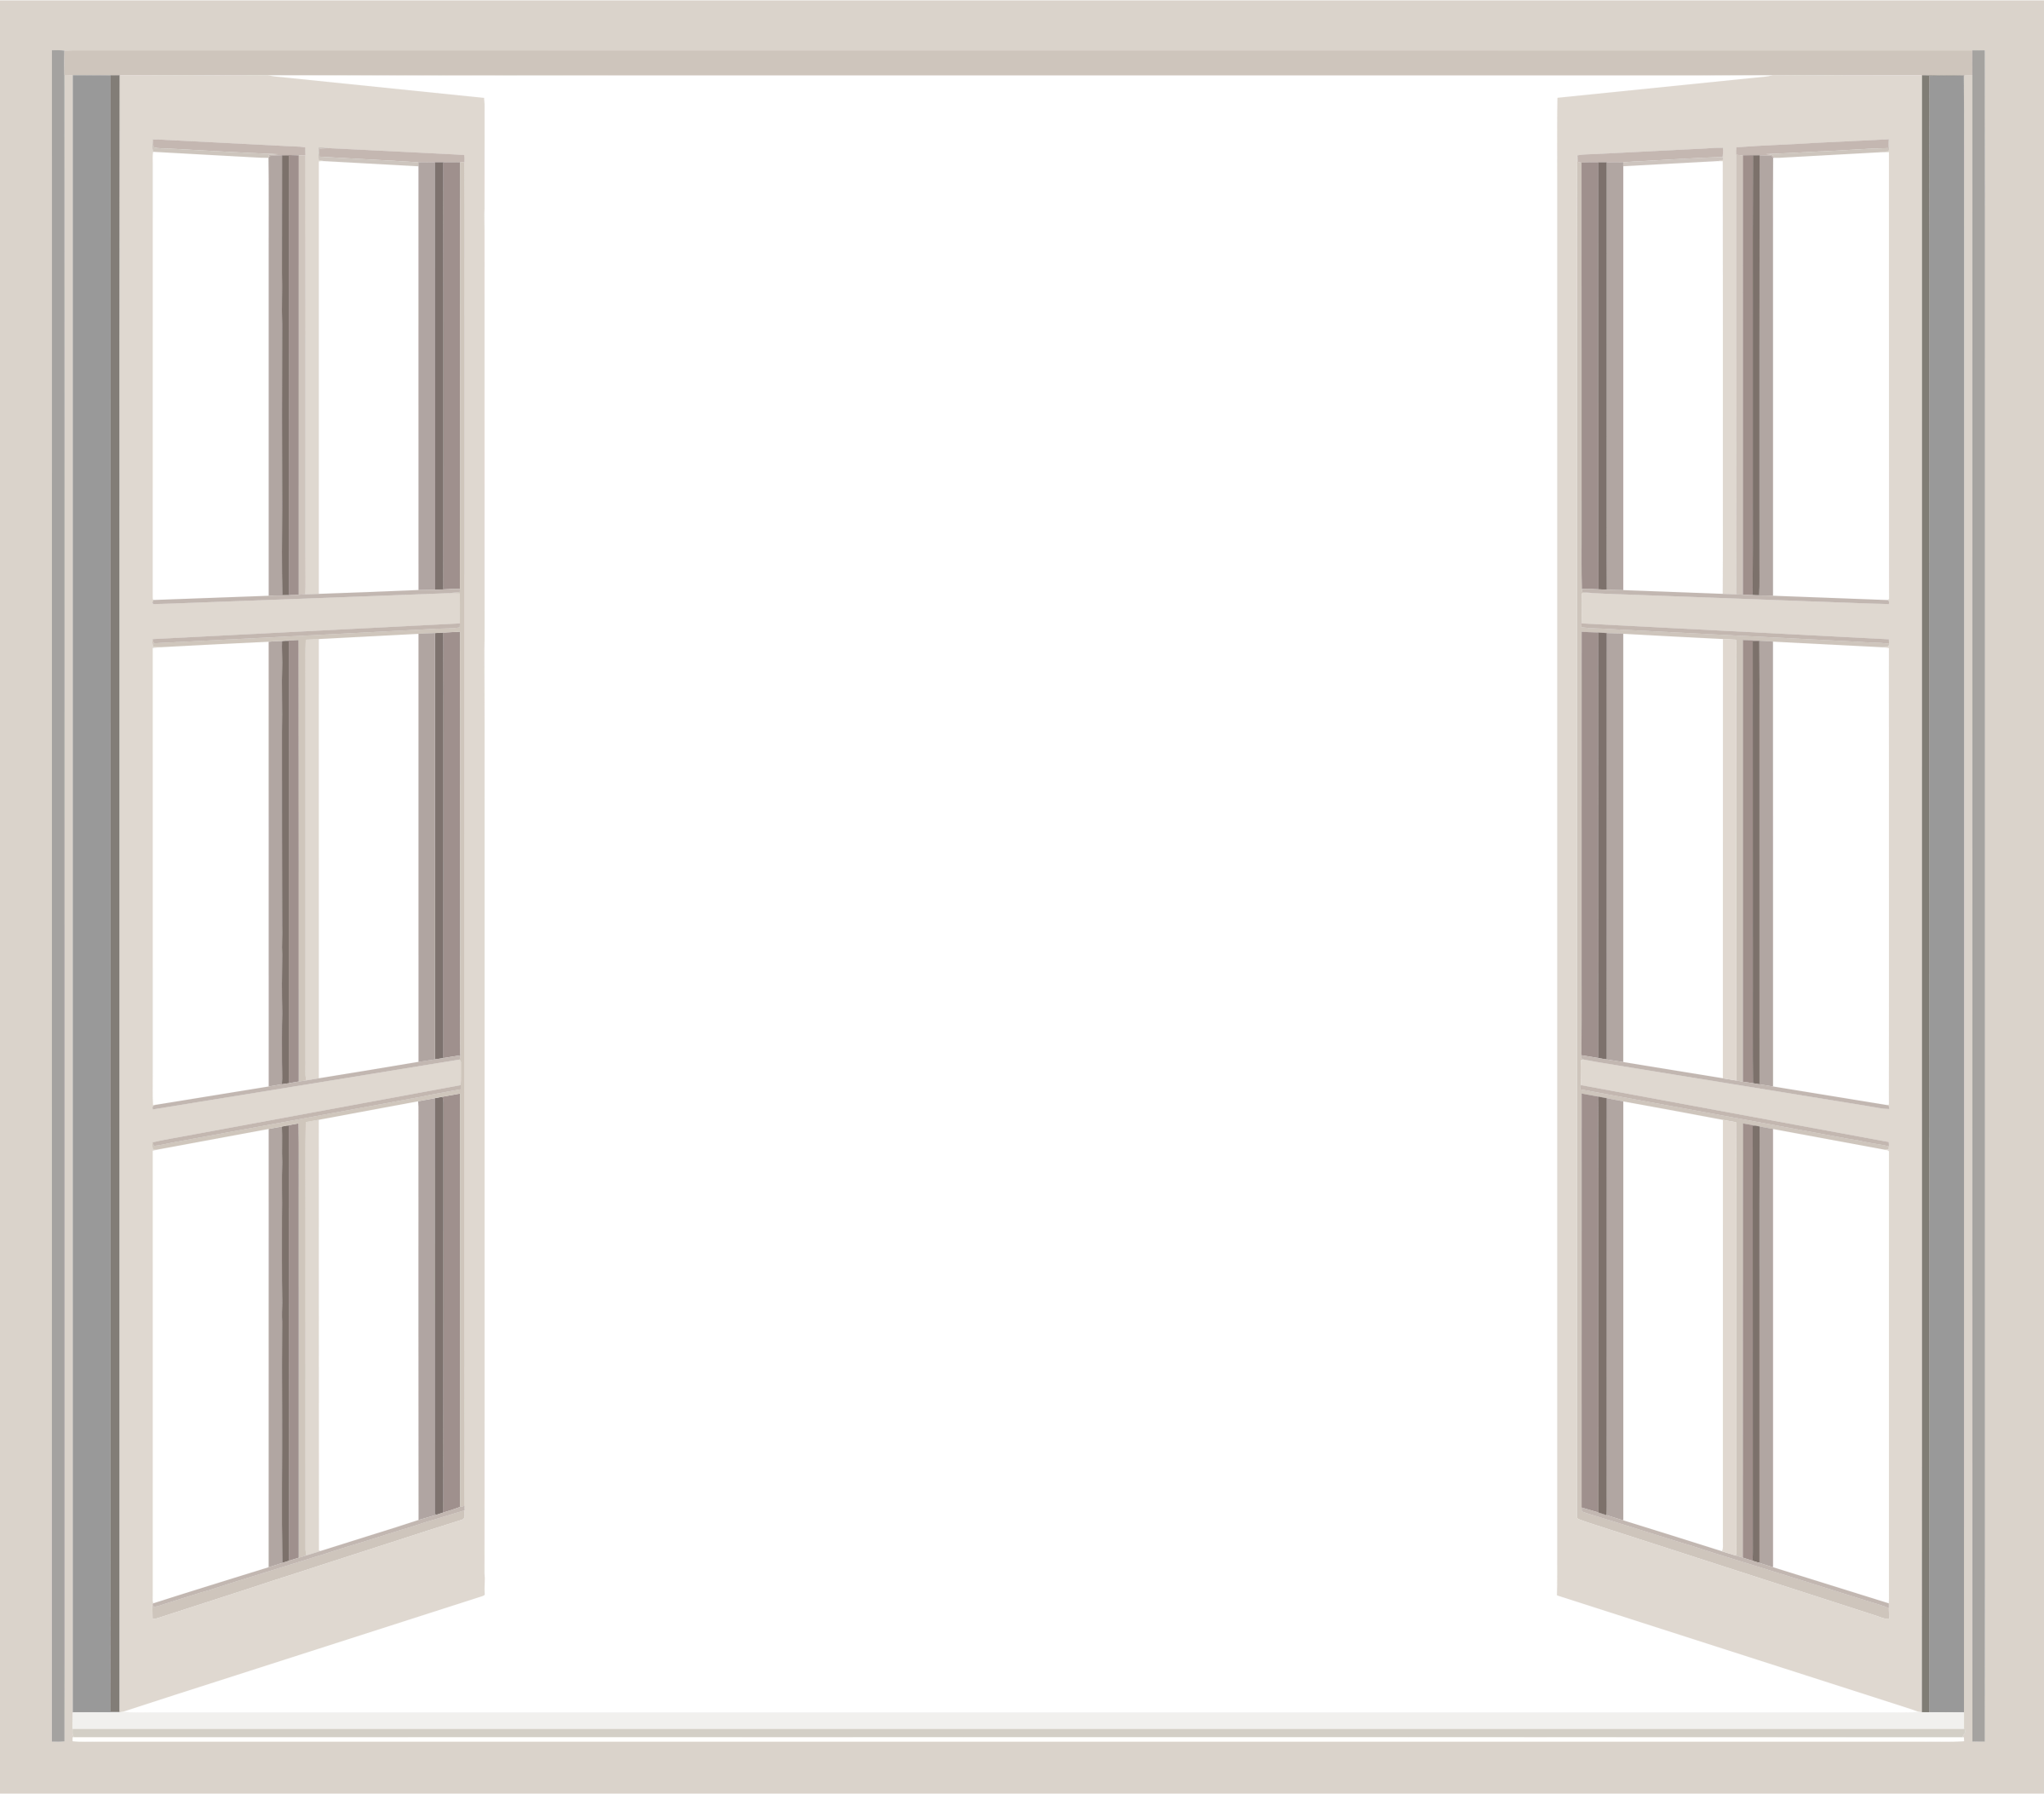 Old window frame clipart png black and white library Pin by Charudeal on objects | Window frames, Frame clipart ... png black and white library